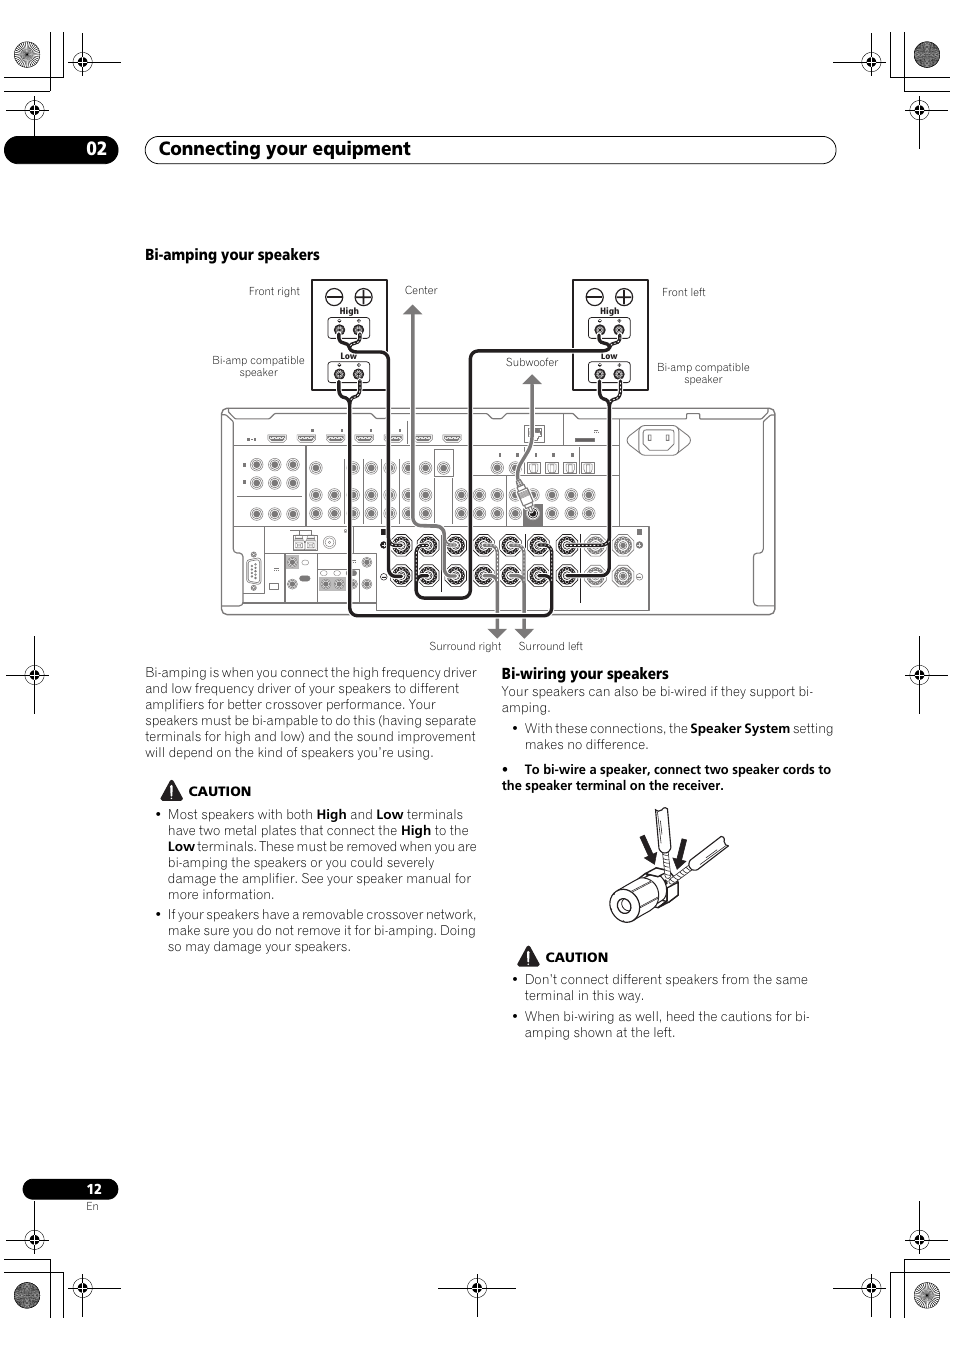 Bi Amping Your Speakers Wiring Connecting Loudspeaker System Crossover Network Schematic Design Equipment 02 Pioneer Vsx 2020 K User Manual Page 12 88